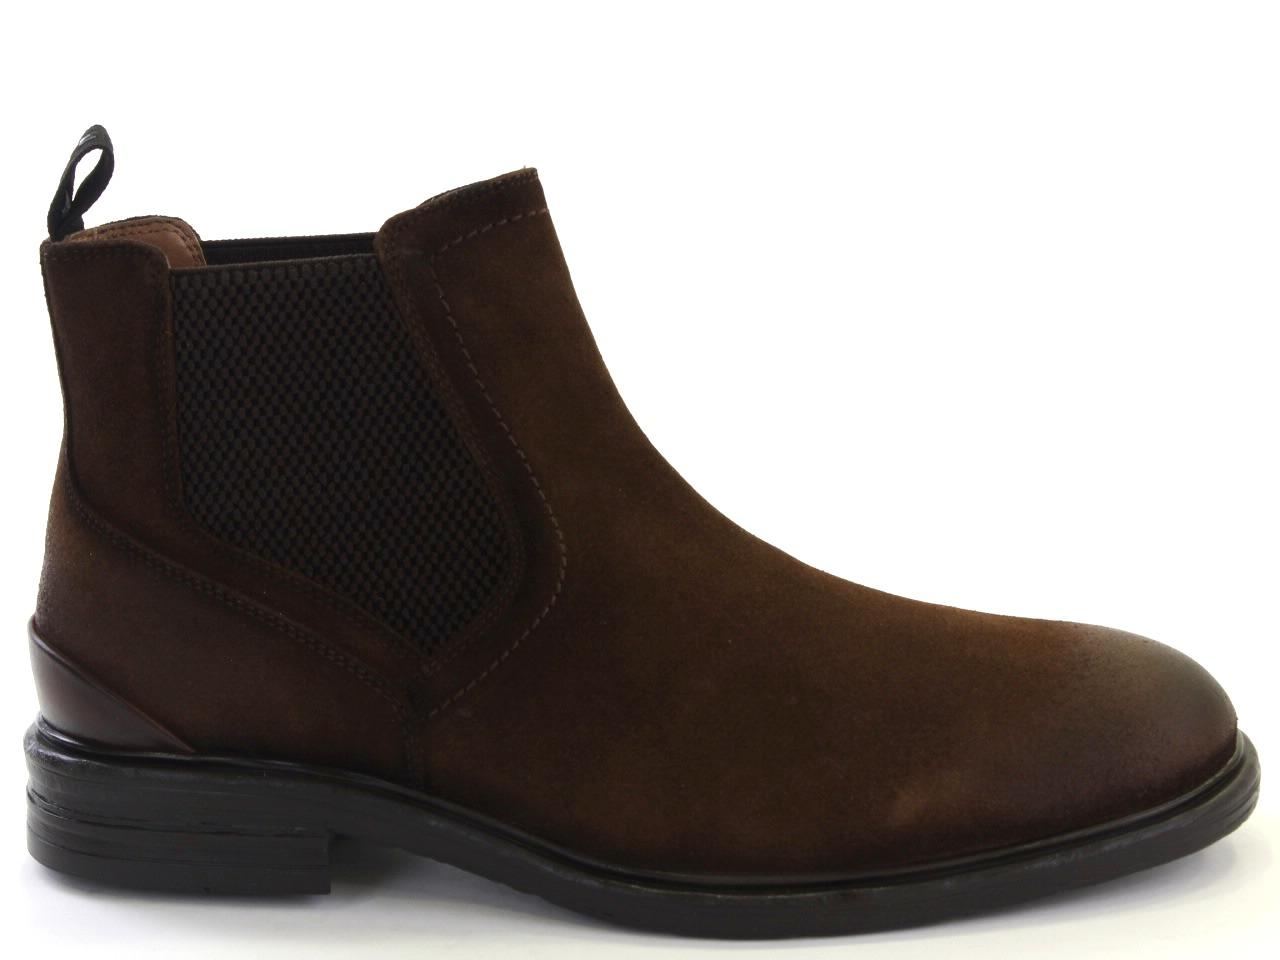 Boots Pepe Jeans - 608 PMS50212